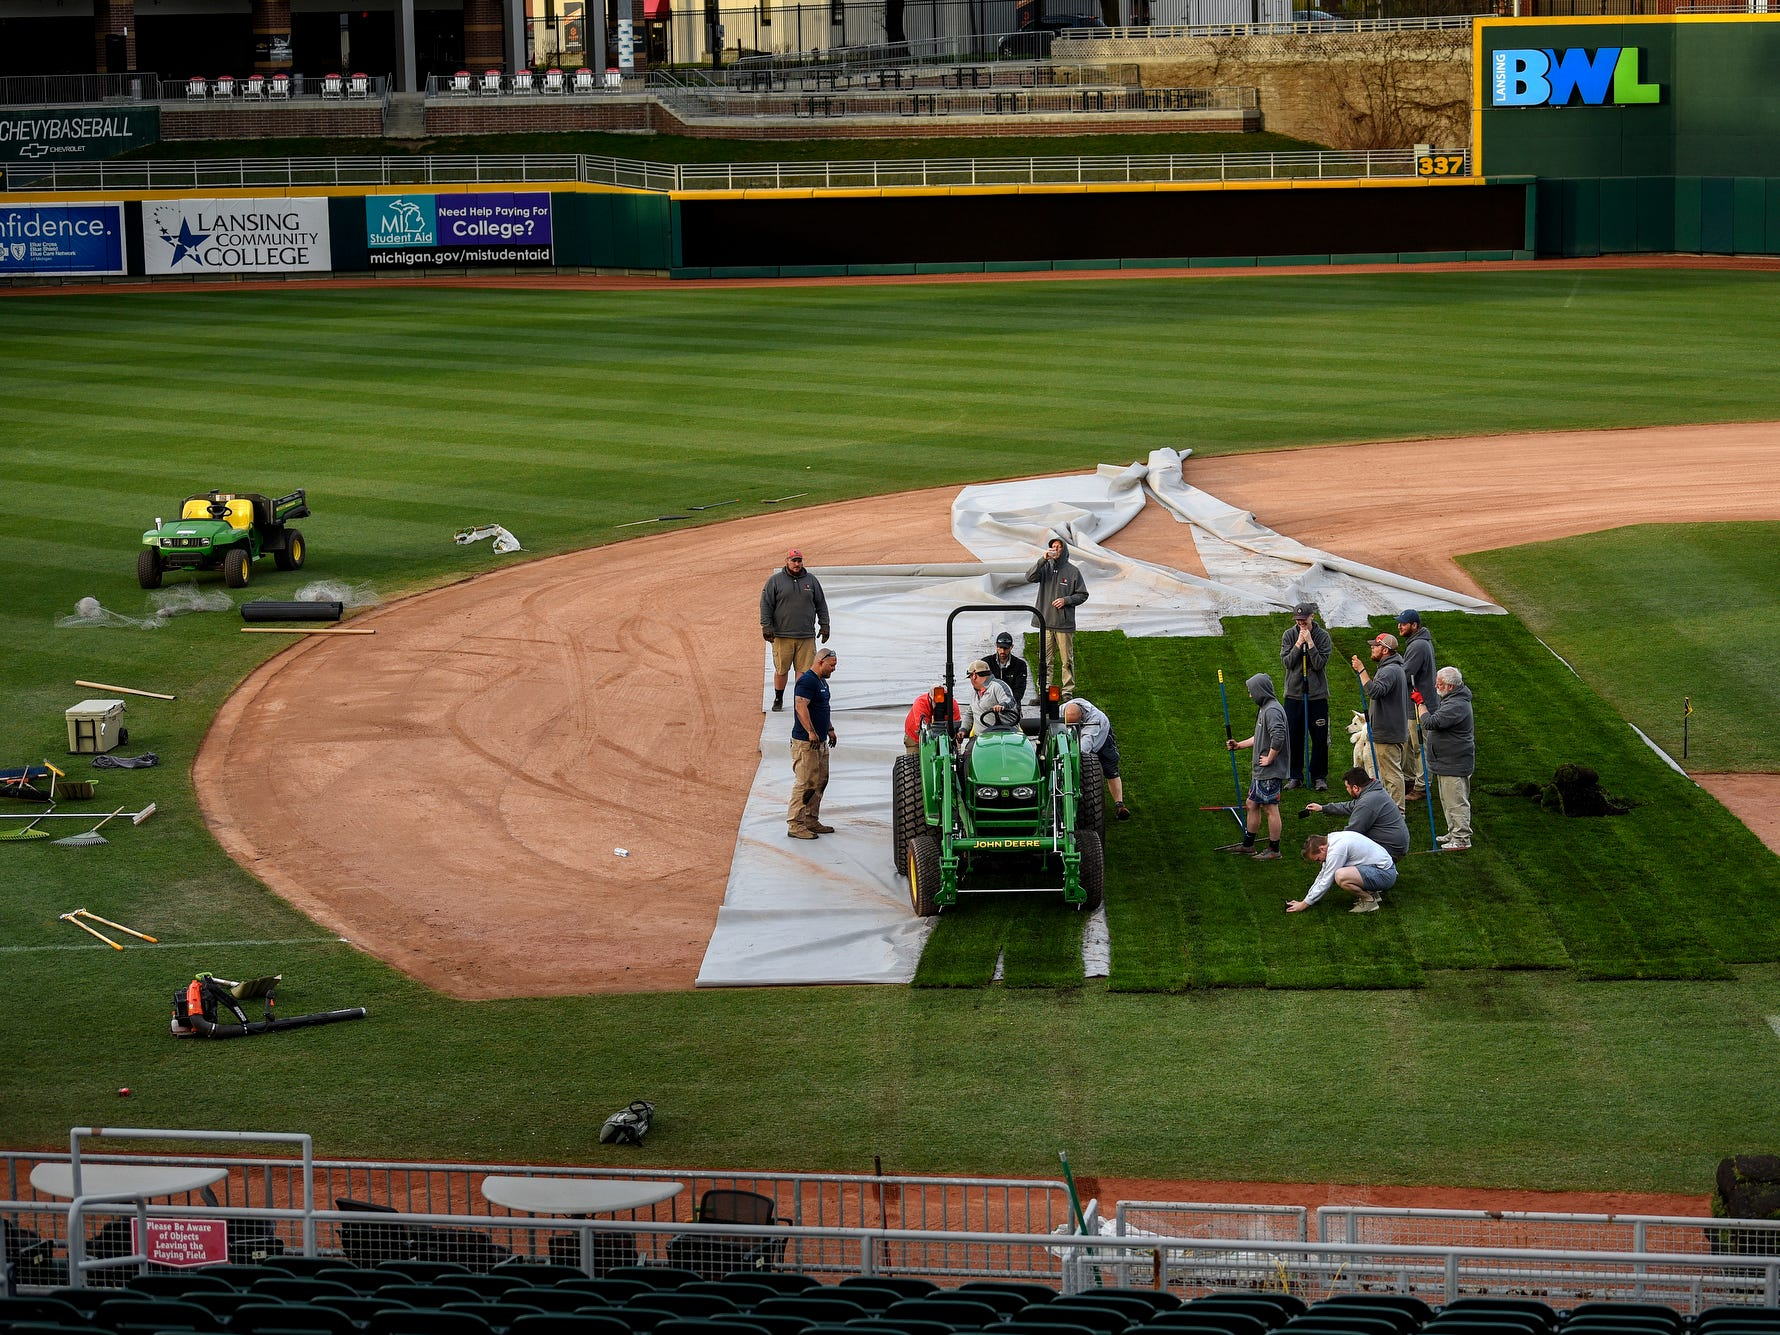 A crew works to transform the Lugnuts baseball field into a soccer pitch on Wednesday, April 24, 2019, before an upcoming Lansing Ignite soccer match at Cooley Law School Stadium in Lansing.